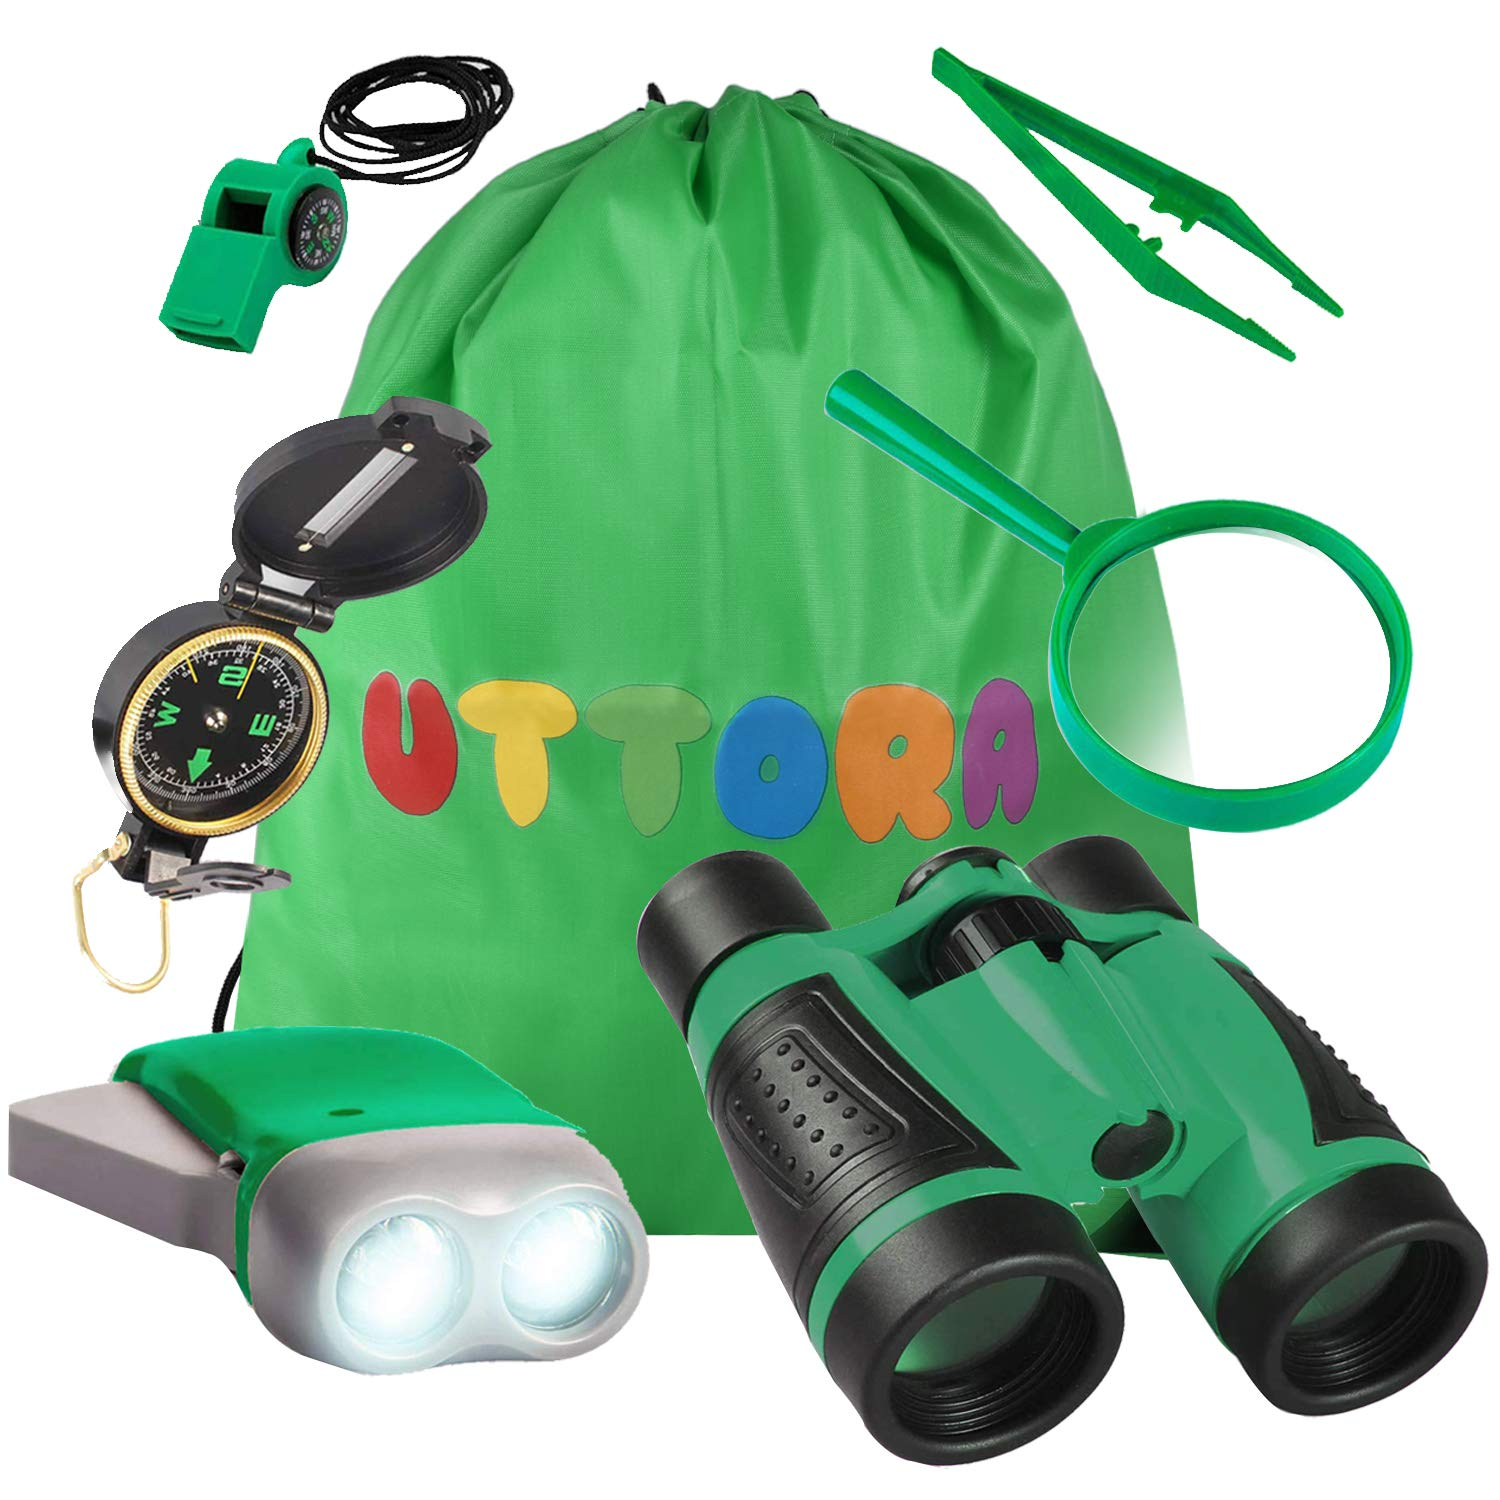 UTTORA Outdoor Explorer Kit Gifts Toys Kids Binoculars Set, Outdoor Exploration Set, Best for 3 4 5 6-12 Year Old Boy and Girl, Kids Telescope Adventure Kit, Children Outdoor Educational Kit